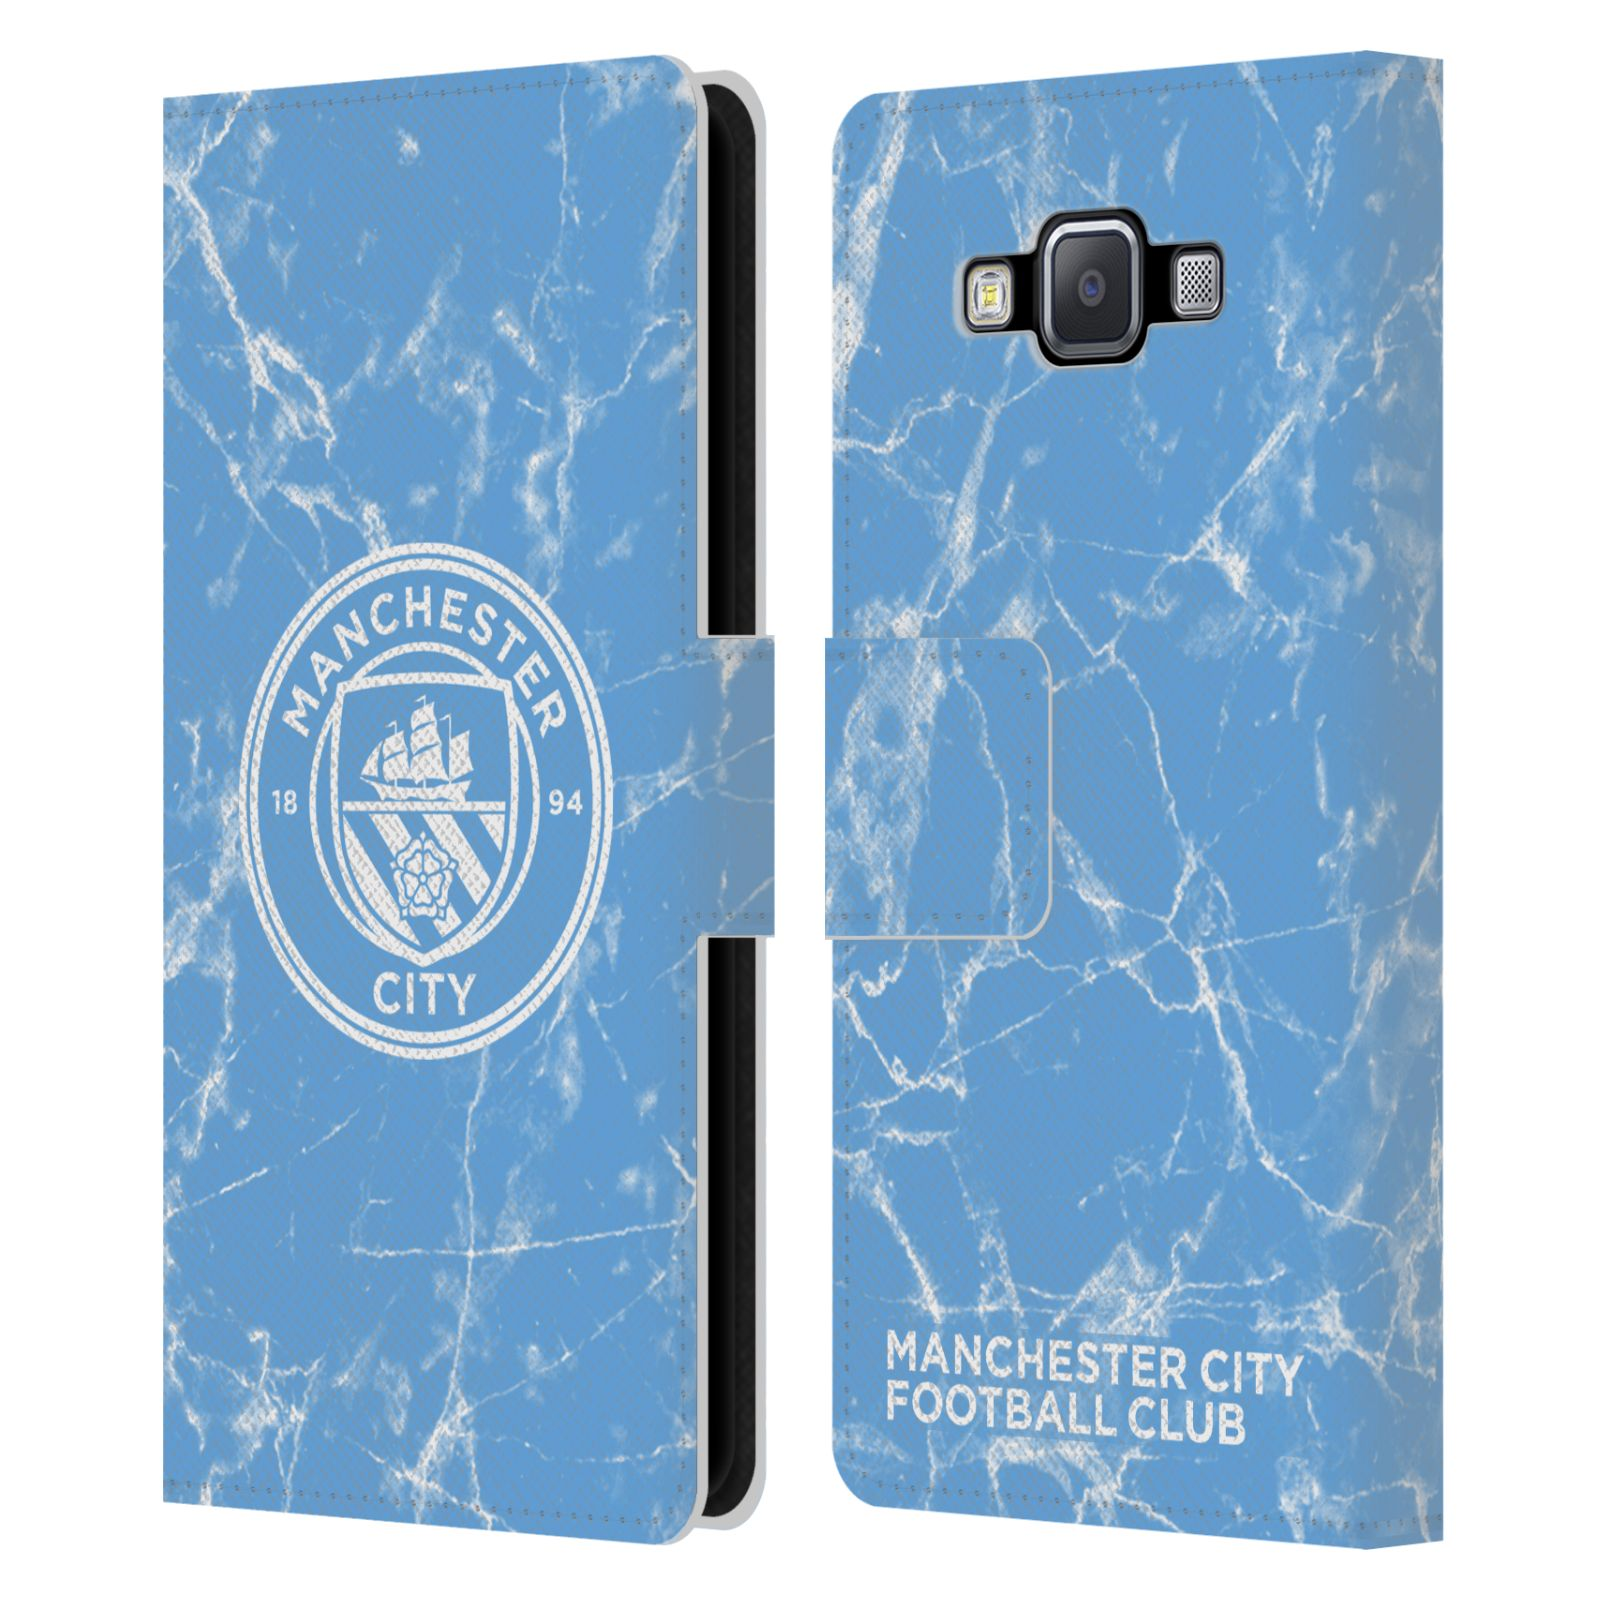 MAN-CITY-FC-2017-18-MARBLE-BADGE-LEATHER-BOOK-WALLET-CASE-FOR-SAMSUNG-PHONES-2